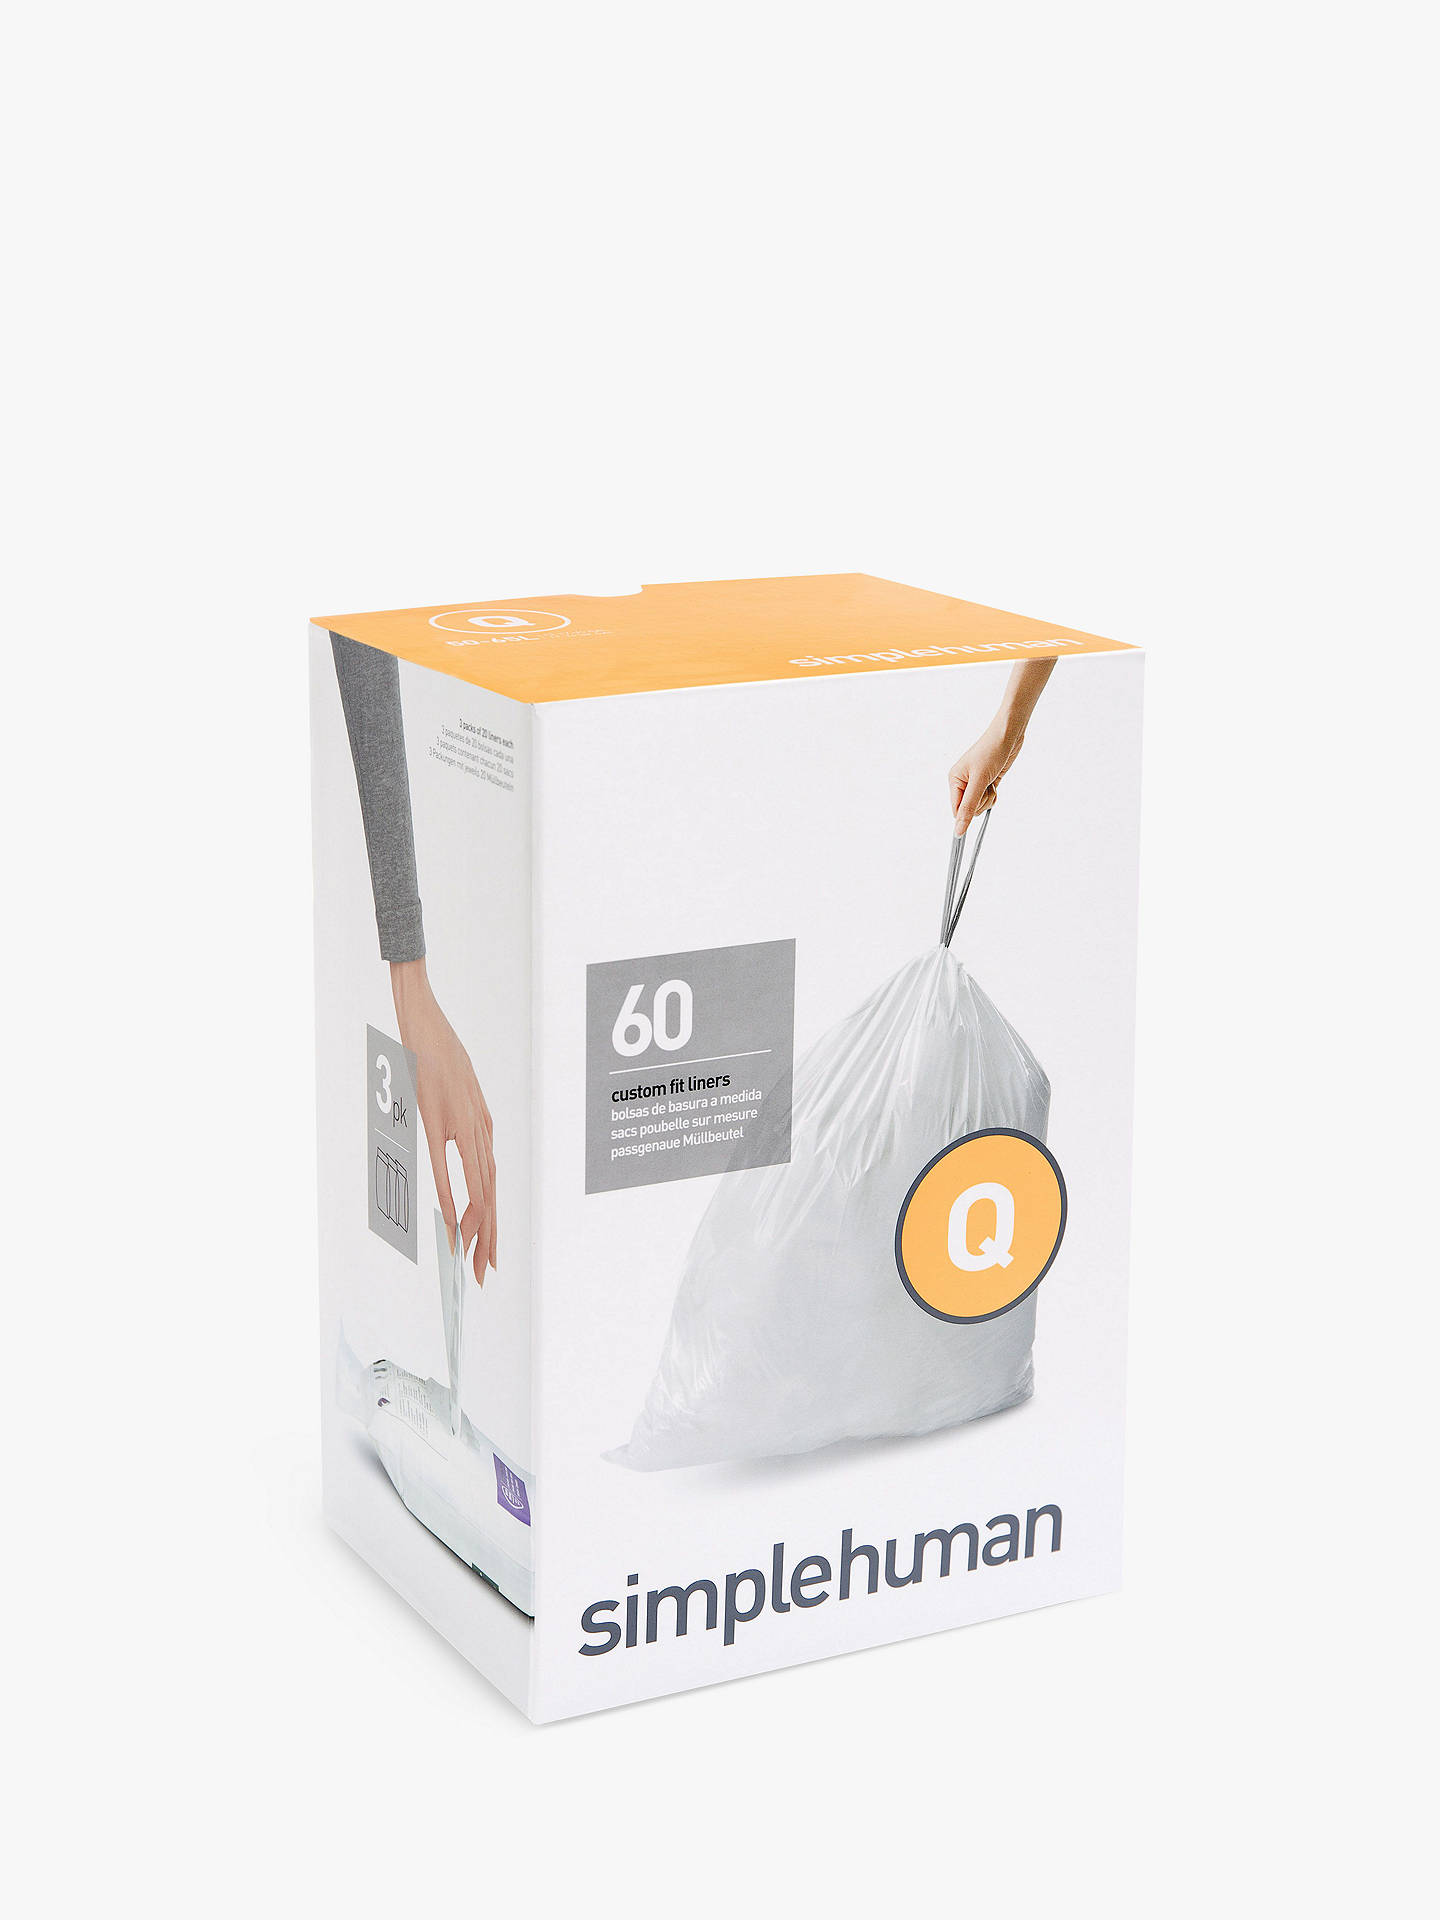 Buysimplehuman Bin Liners, Size Q, Three Packs of 20 Online at johnlewis.com